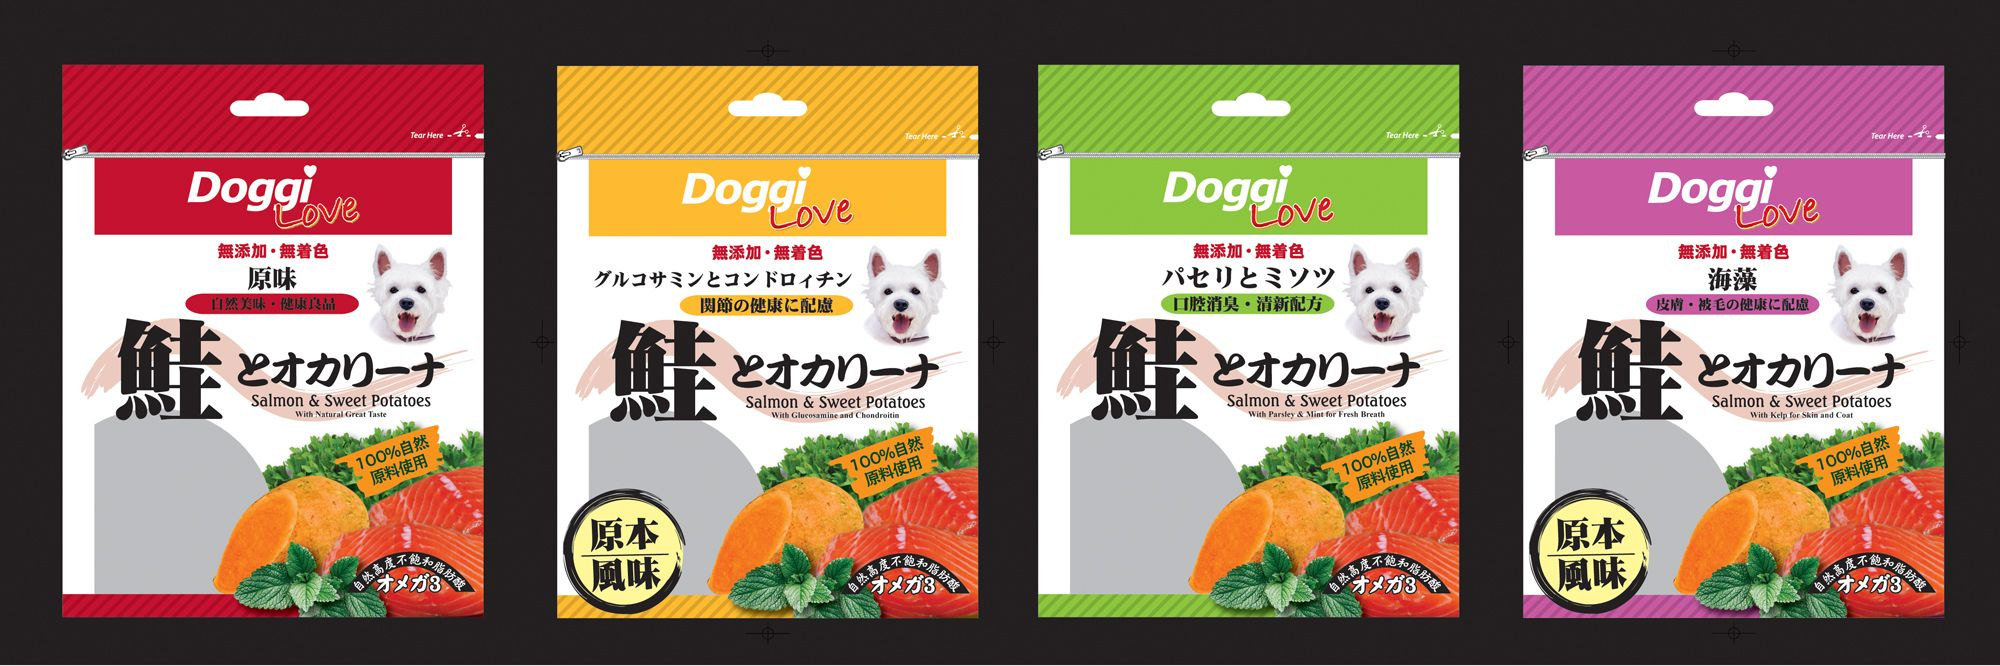 Lifetime Dog Food Packaging By Asadvertising On Deviantart With